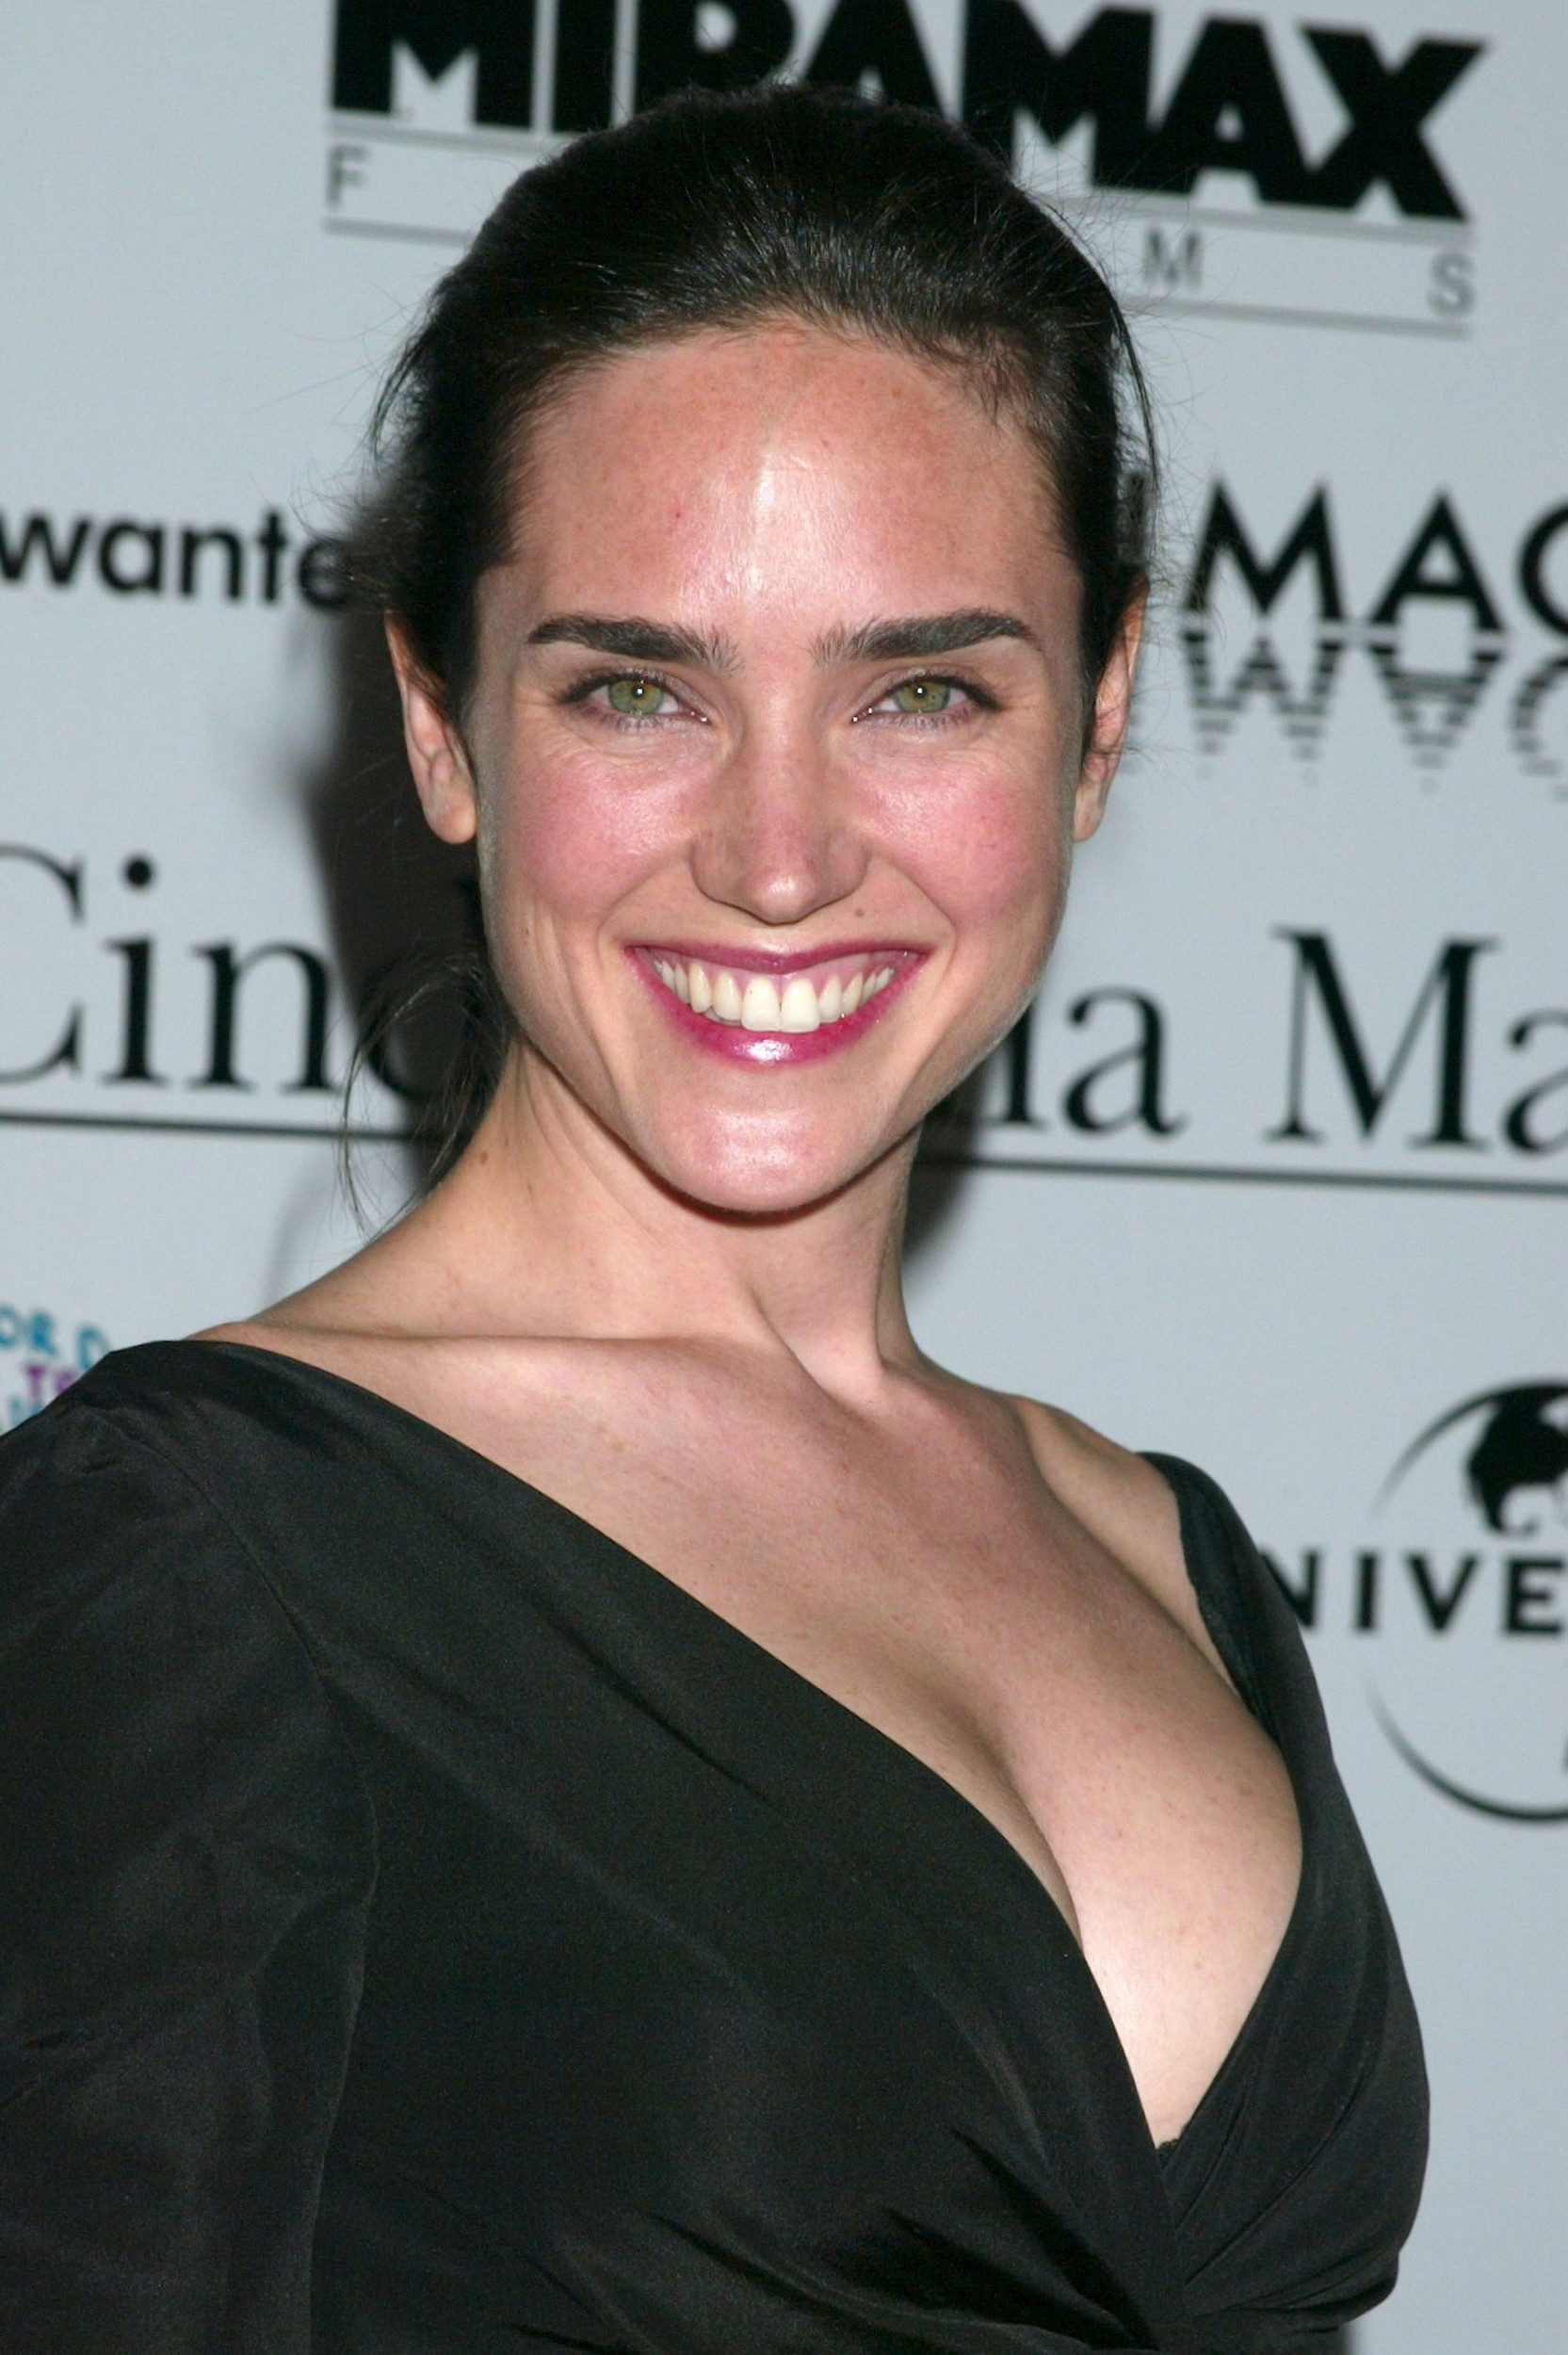 Jennifer Connelly Hot Bikini Photos, Videos  Images Gallery-4279